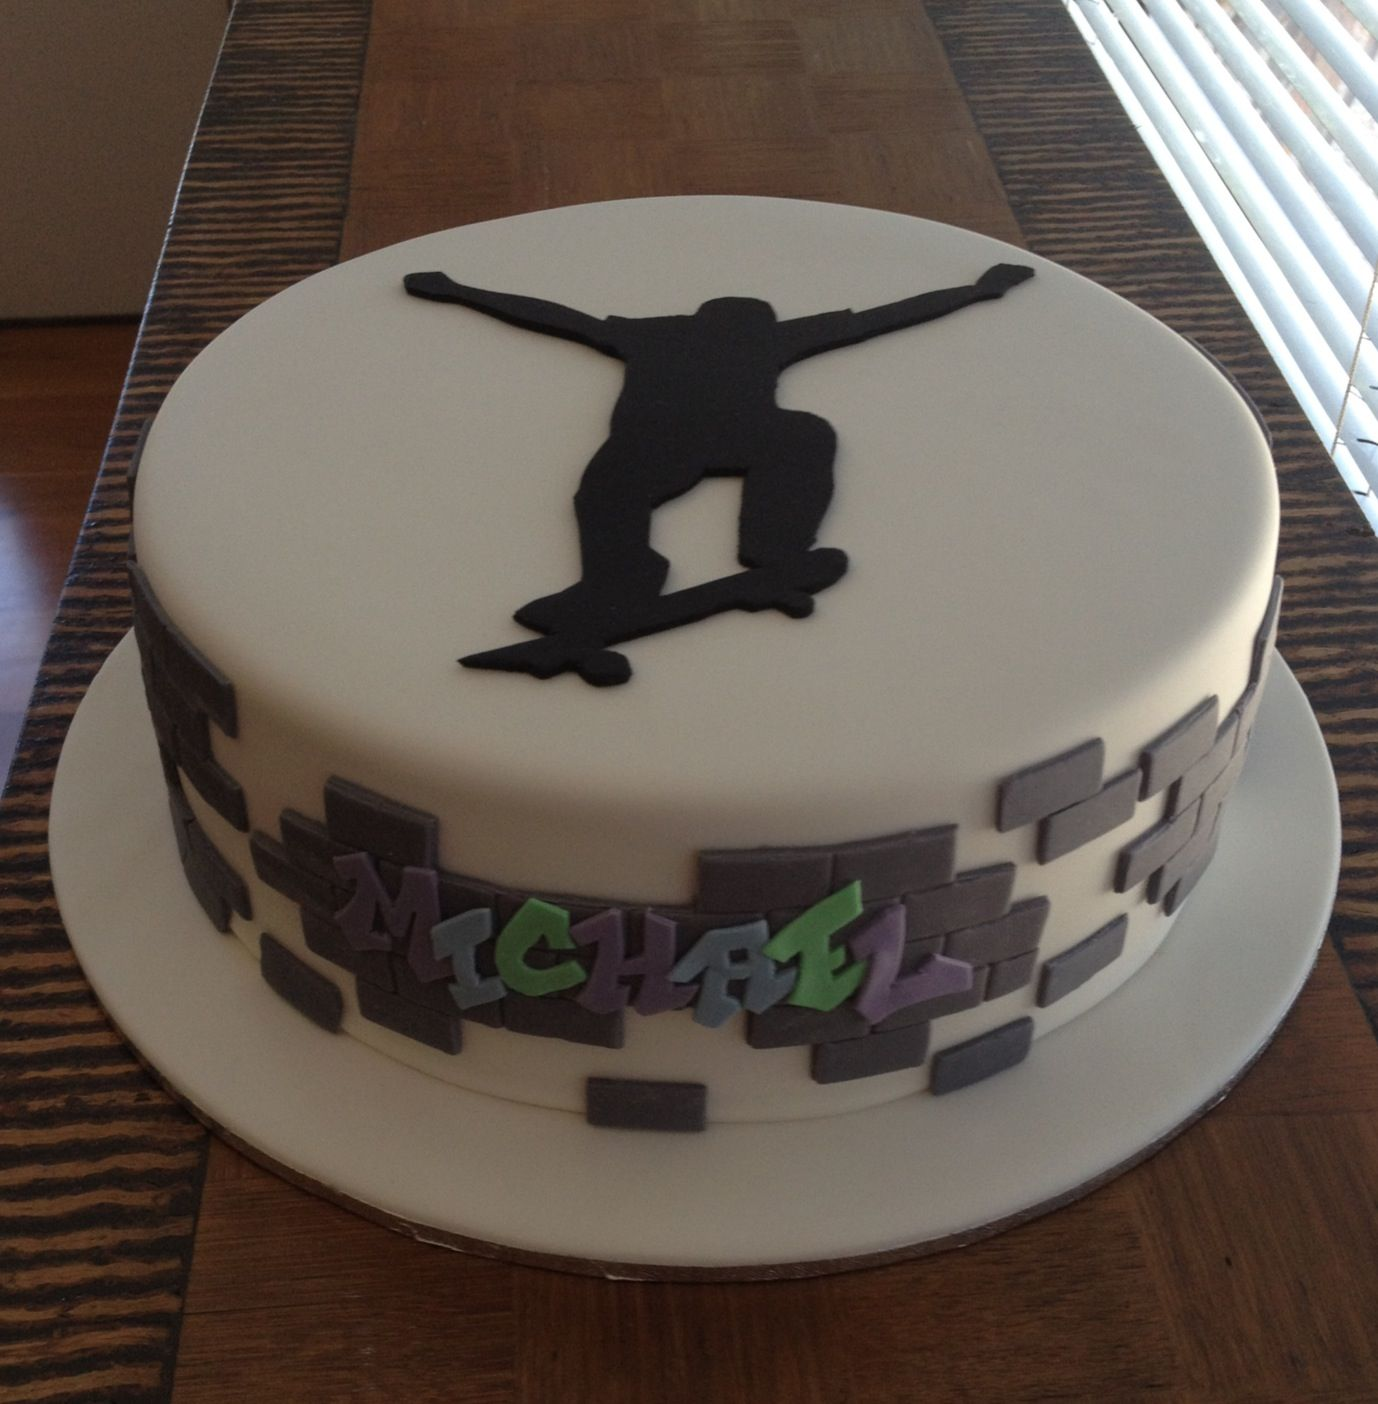 Simple Skateboard Cake For My Son Turning 7 Kids Cakes cakepins.com ...